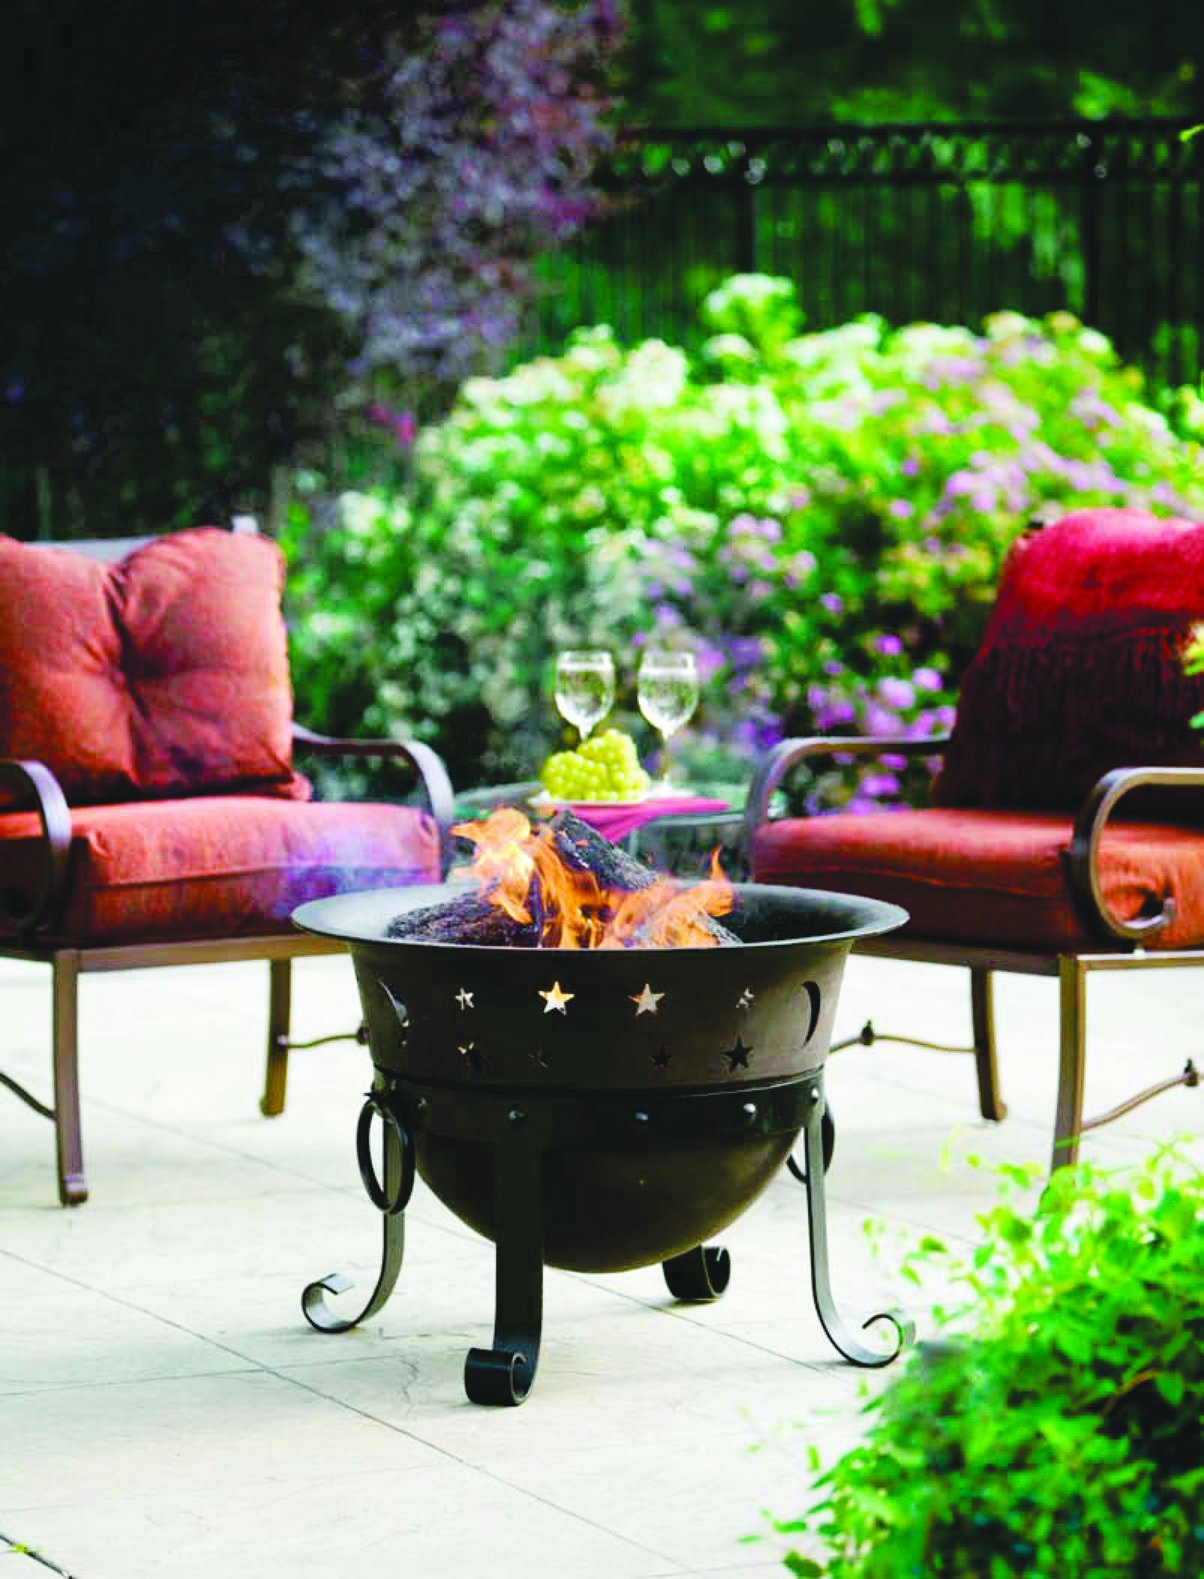 Catalina Creations 29'' Heavy Duty Cast Iron Fire Pit with Cover and Accessories by Catalina Creations